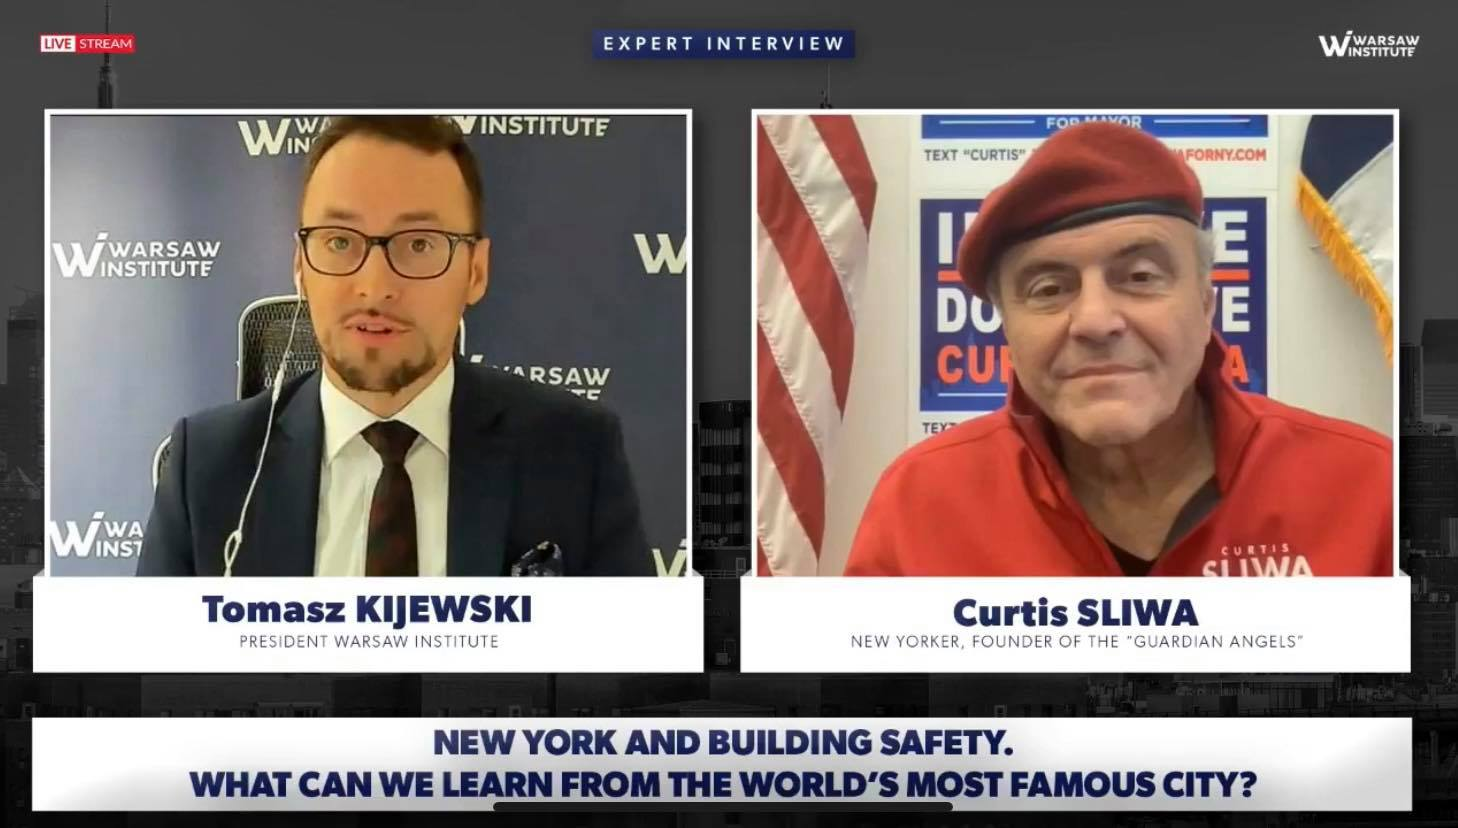 Event Summary: New York and Building Safety. What Can We Learn from the World's Most famous city?